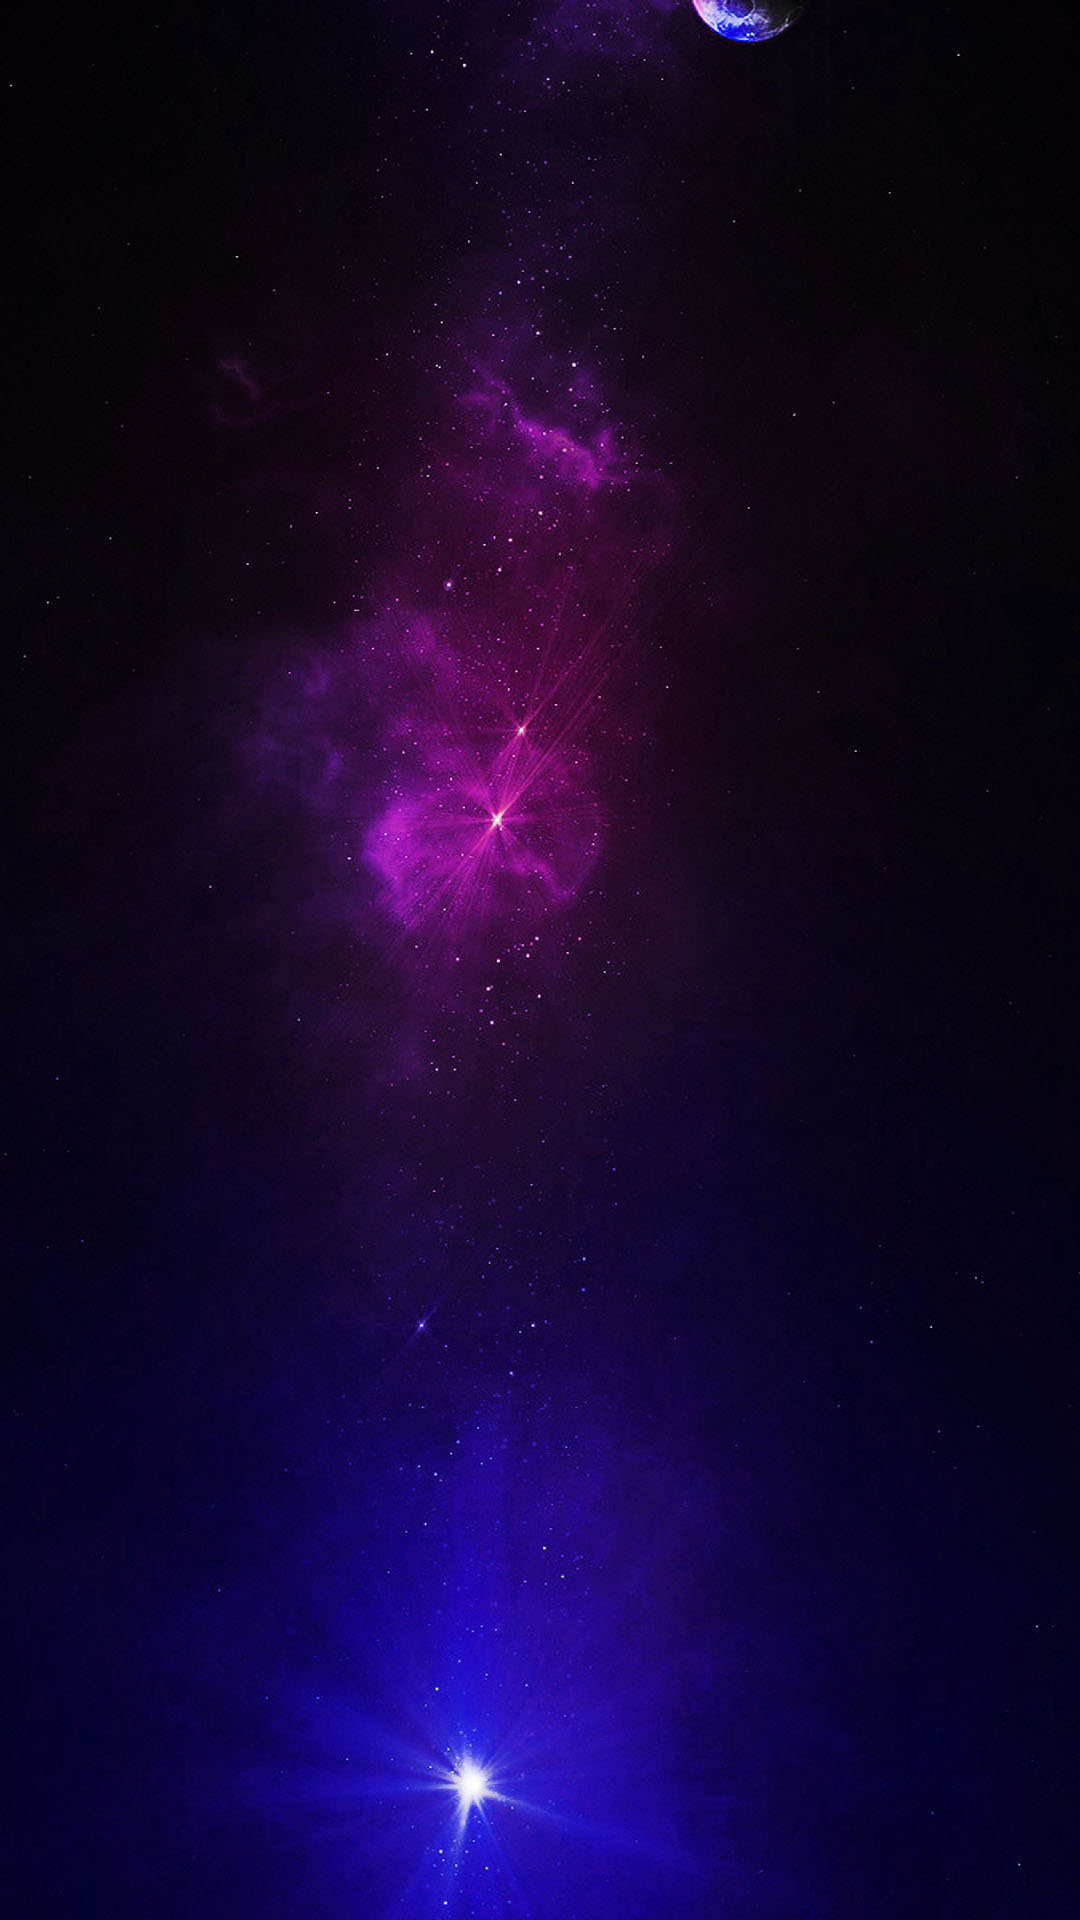 Free Download Space Theme Galaxy Stars Android Wallpaper Download 1080x1920 For Your Desktop Mobile Tablet Explore 46 Space Themed Wallpaper For Walls Space Wallpaper For Walls Desktop Wallpaper Space